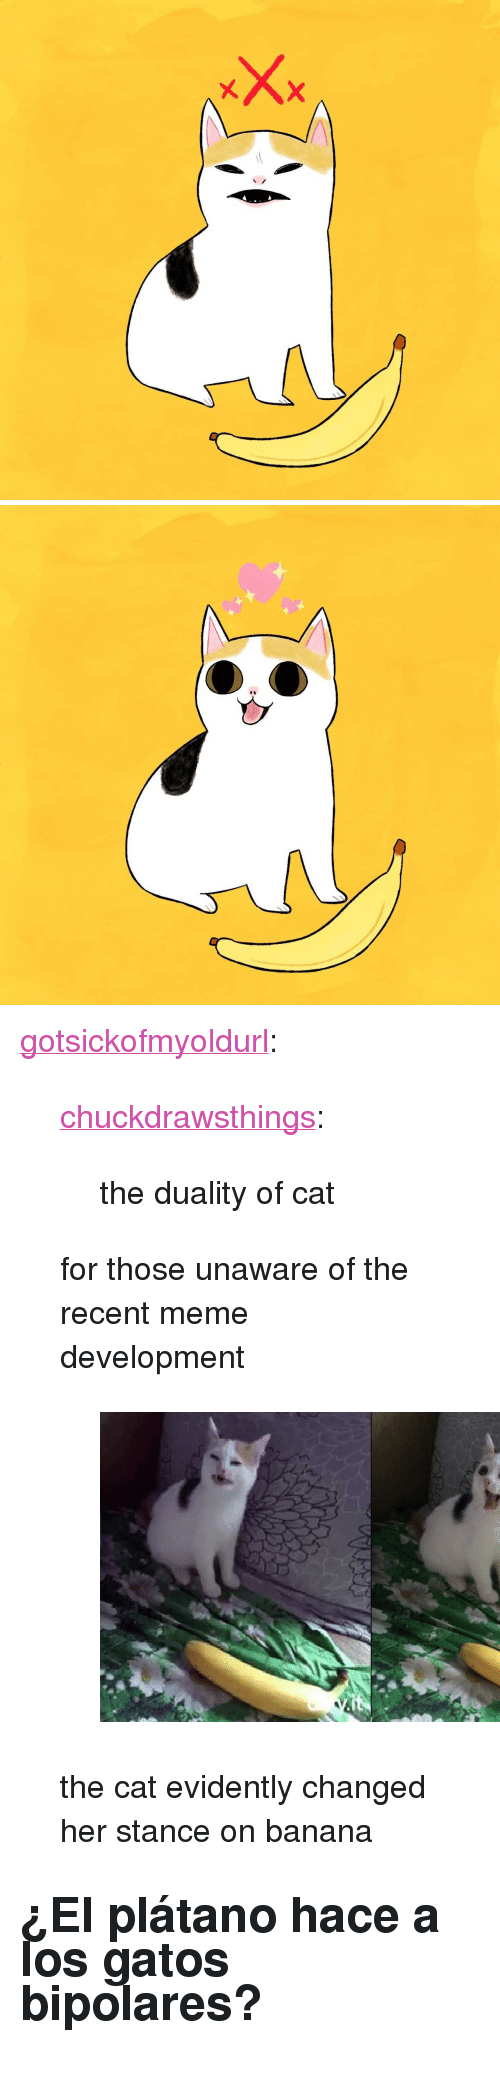 "los gatos: <p><a href=""http://gotsickofmyoldurl.tumblr.com/post/170800701101/chuckdrawsthings-the-duality-of-cat-for-those"" class=""tumblr_blog"">gotsickofmyoldurl</a>:</p><blockquote> <p><a href=""http://chuckdrawsthings.tumblr.com/post/170693393843/the-duality-of-cat"" class=""tumblr_blog"">chuckdrawsthings</a>:</p> <blockquote><p>the duality of cat</p></blockquote> <p>for those unaware of the recent meme development</p> <figure class=""tmblr-full"" data-orig-height=""405"" data-orig-width=""706""><img src=""https://78.media.tumblr.com/c00cff490bb25f6a54b67ddab6f53dd2/tumblr_inline_p41q1gu4rm1qi1nux_540.png"" data-orig-height=""405"" data-orig-width=""706""/></figure><p>the cat evidently changed her stance on banana</p> </blockquote> <h2>¿El plátano hace a los gatos bipolares?</h2>"